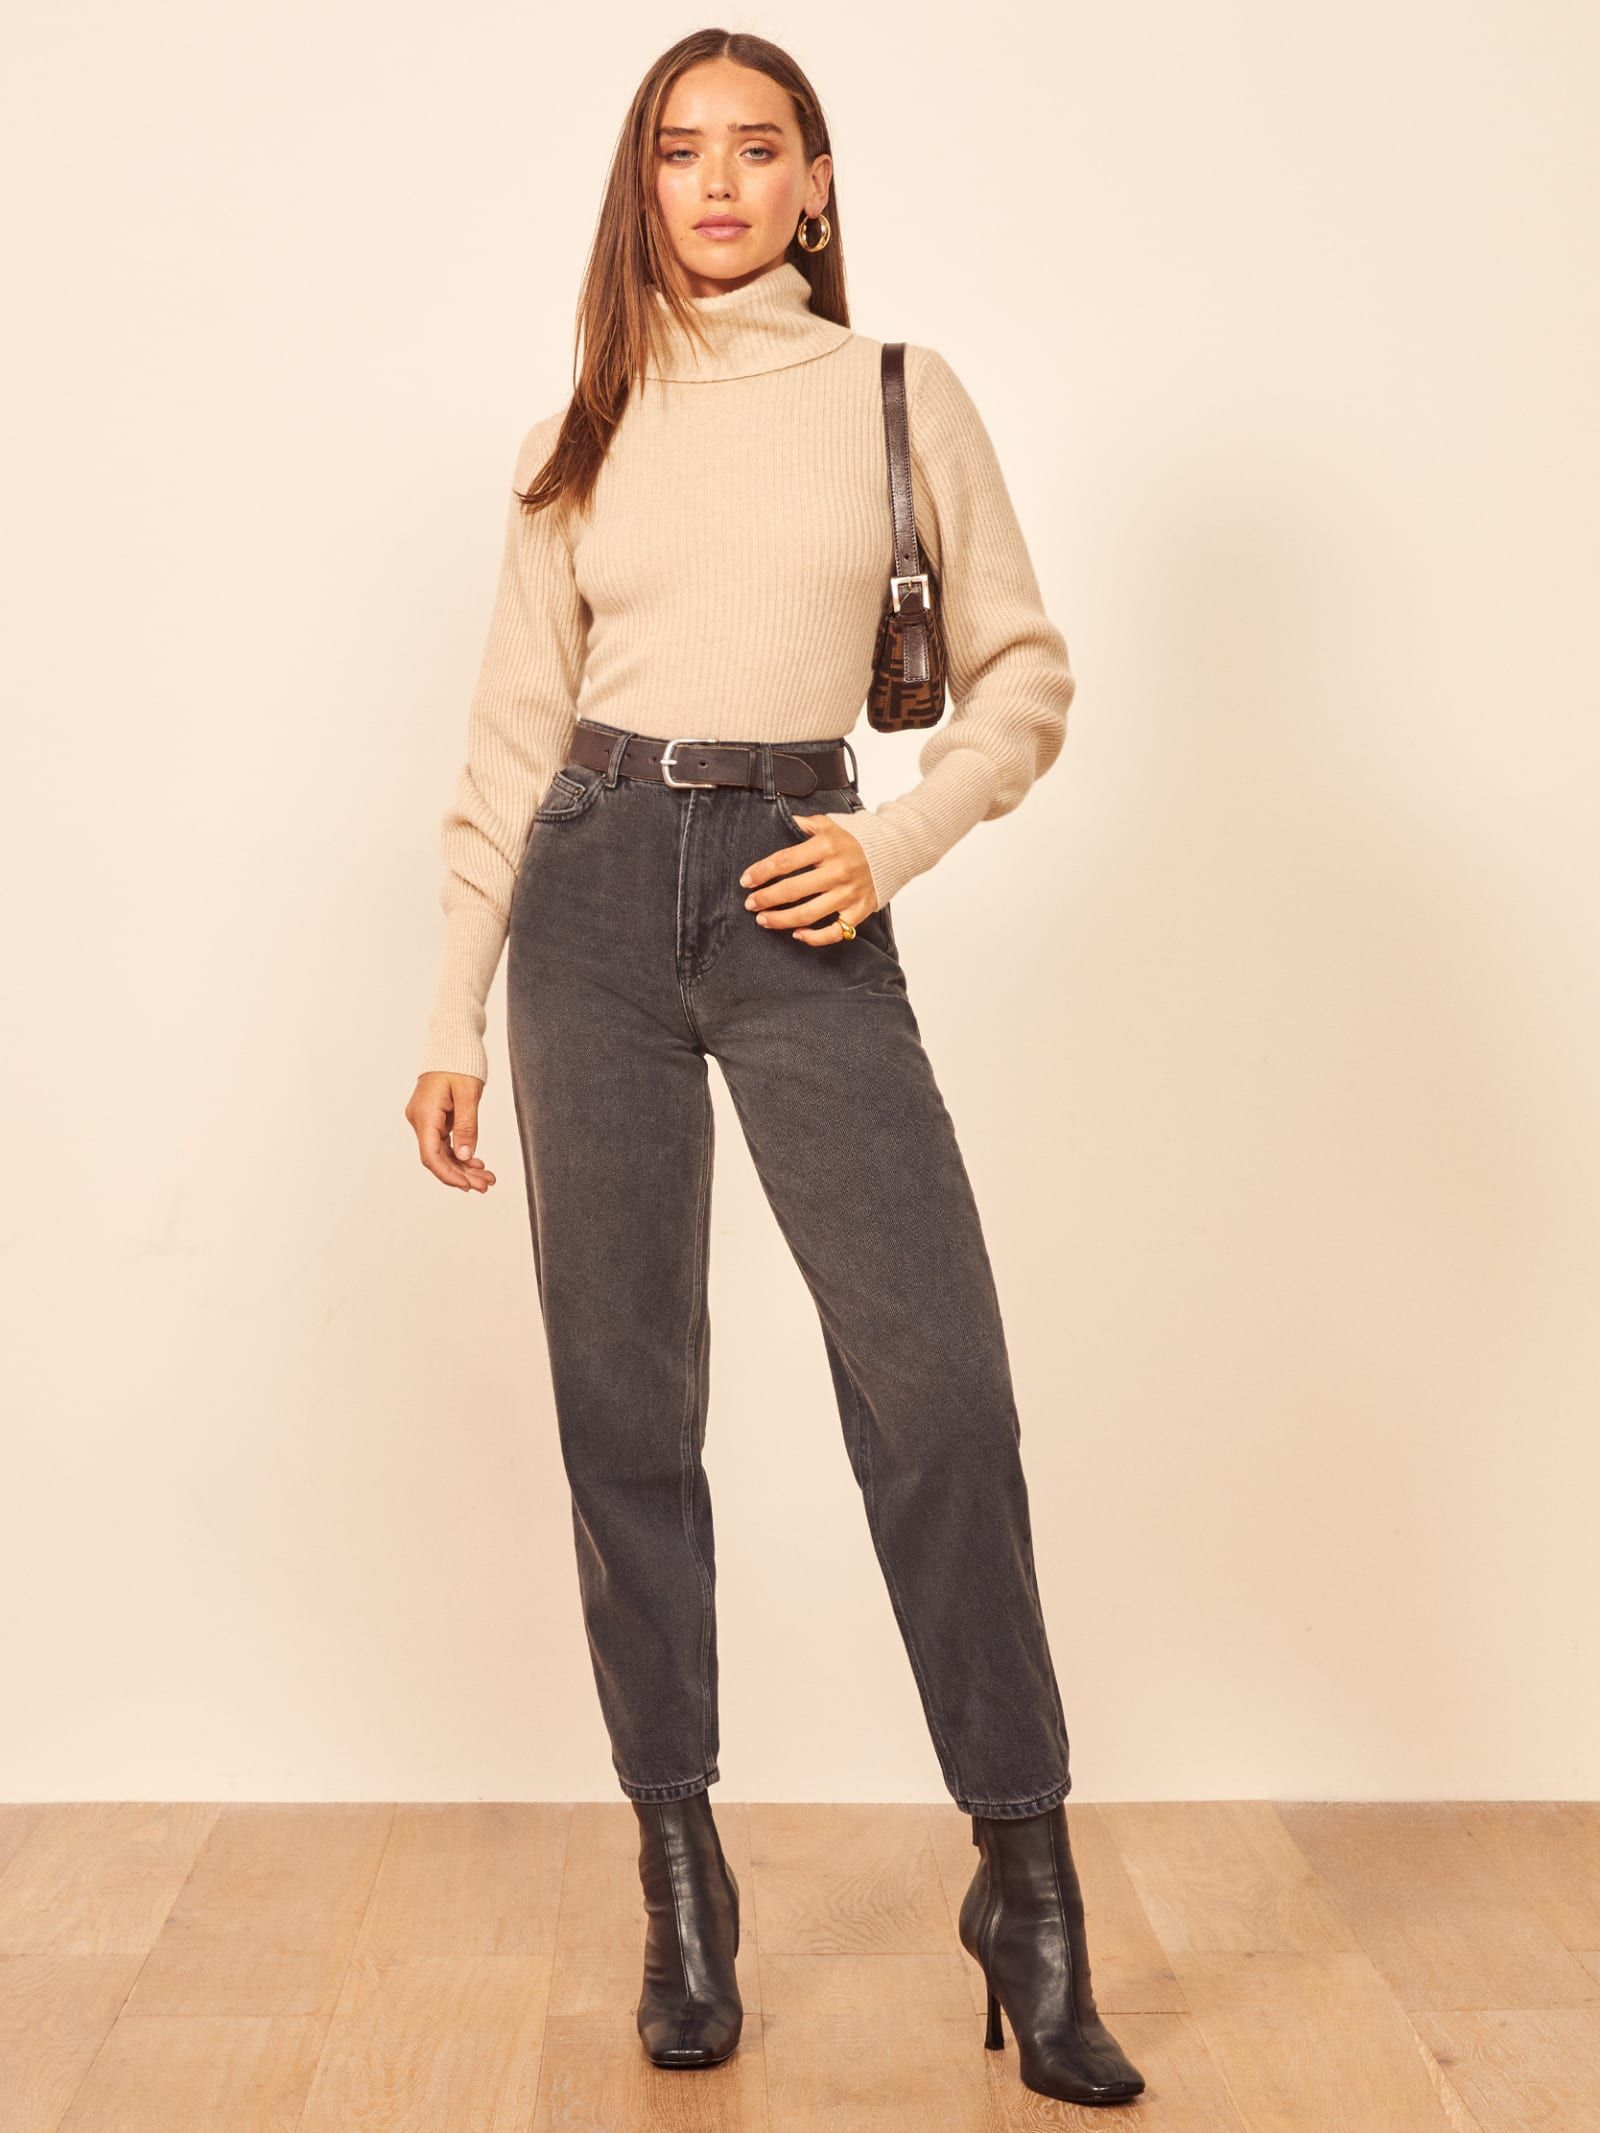 Jeans Outfit For Women Casual Wear Stylish Dress For Girls Stunning Christmas Party Dresses Sexy Mini Dress High Waisted Wide Leg Pants Casual Asian Clothes